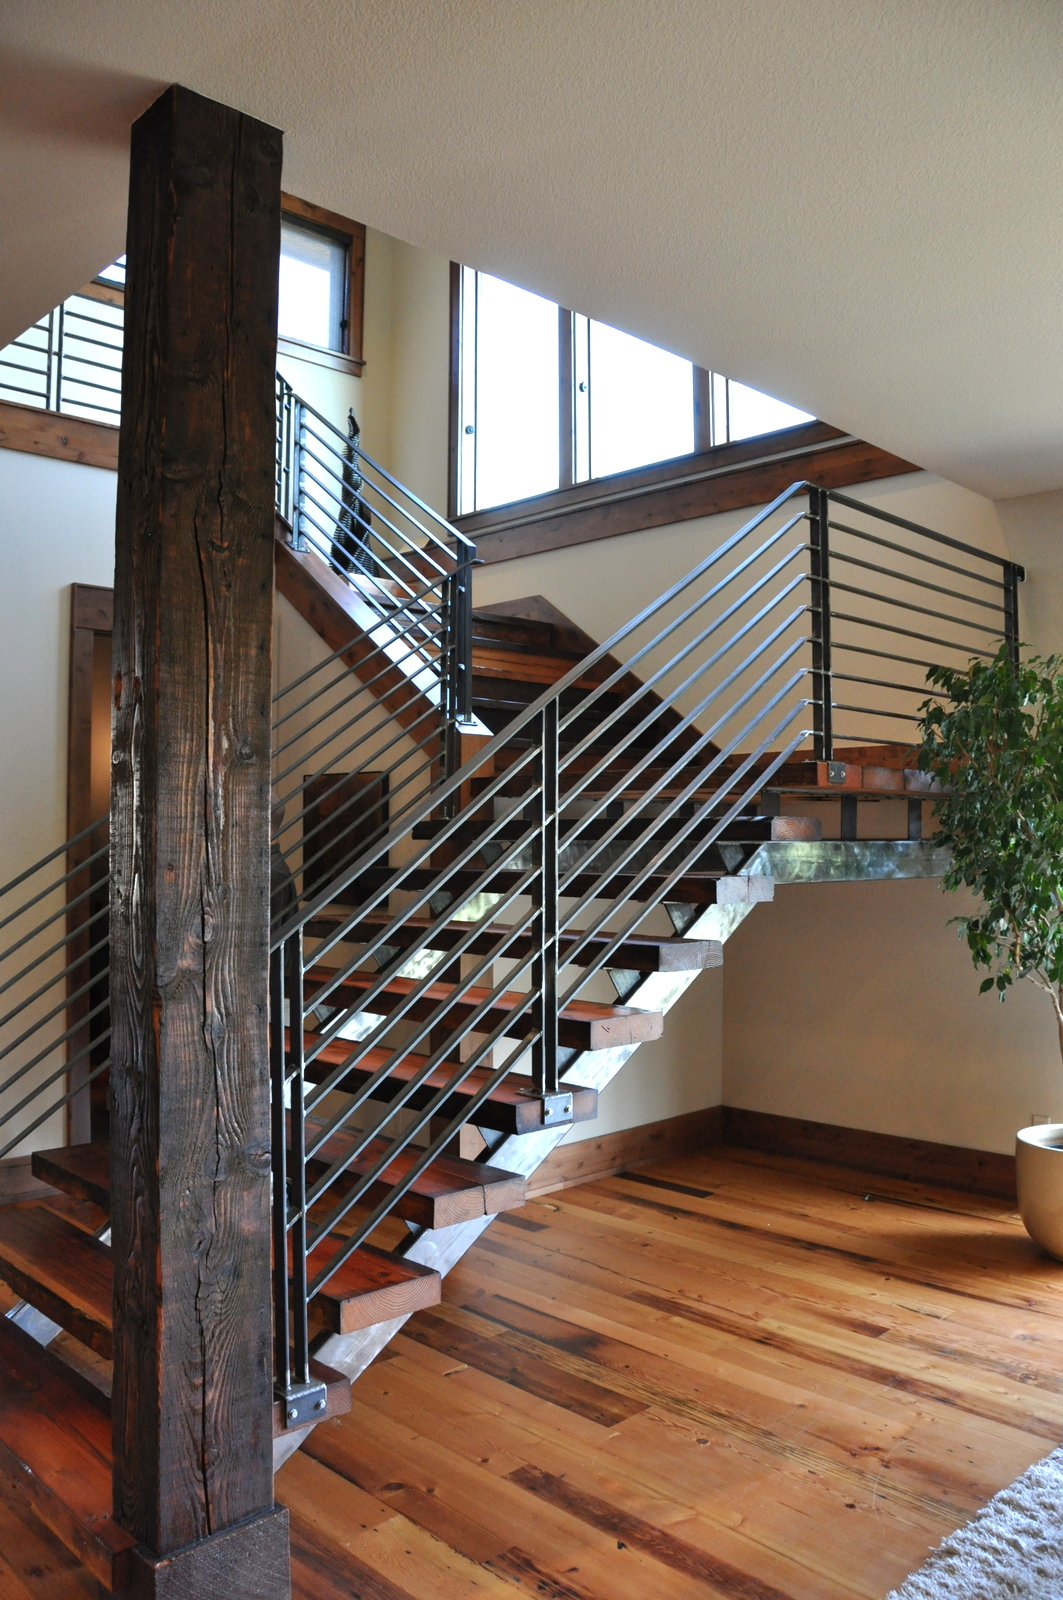 Wood Stair Railings on Pinterest | Iron Stair Railing ...